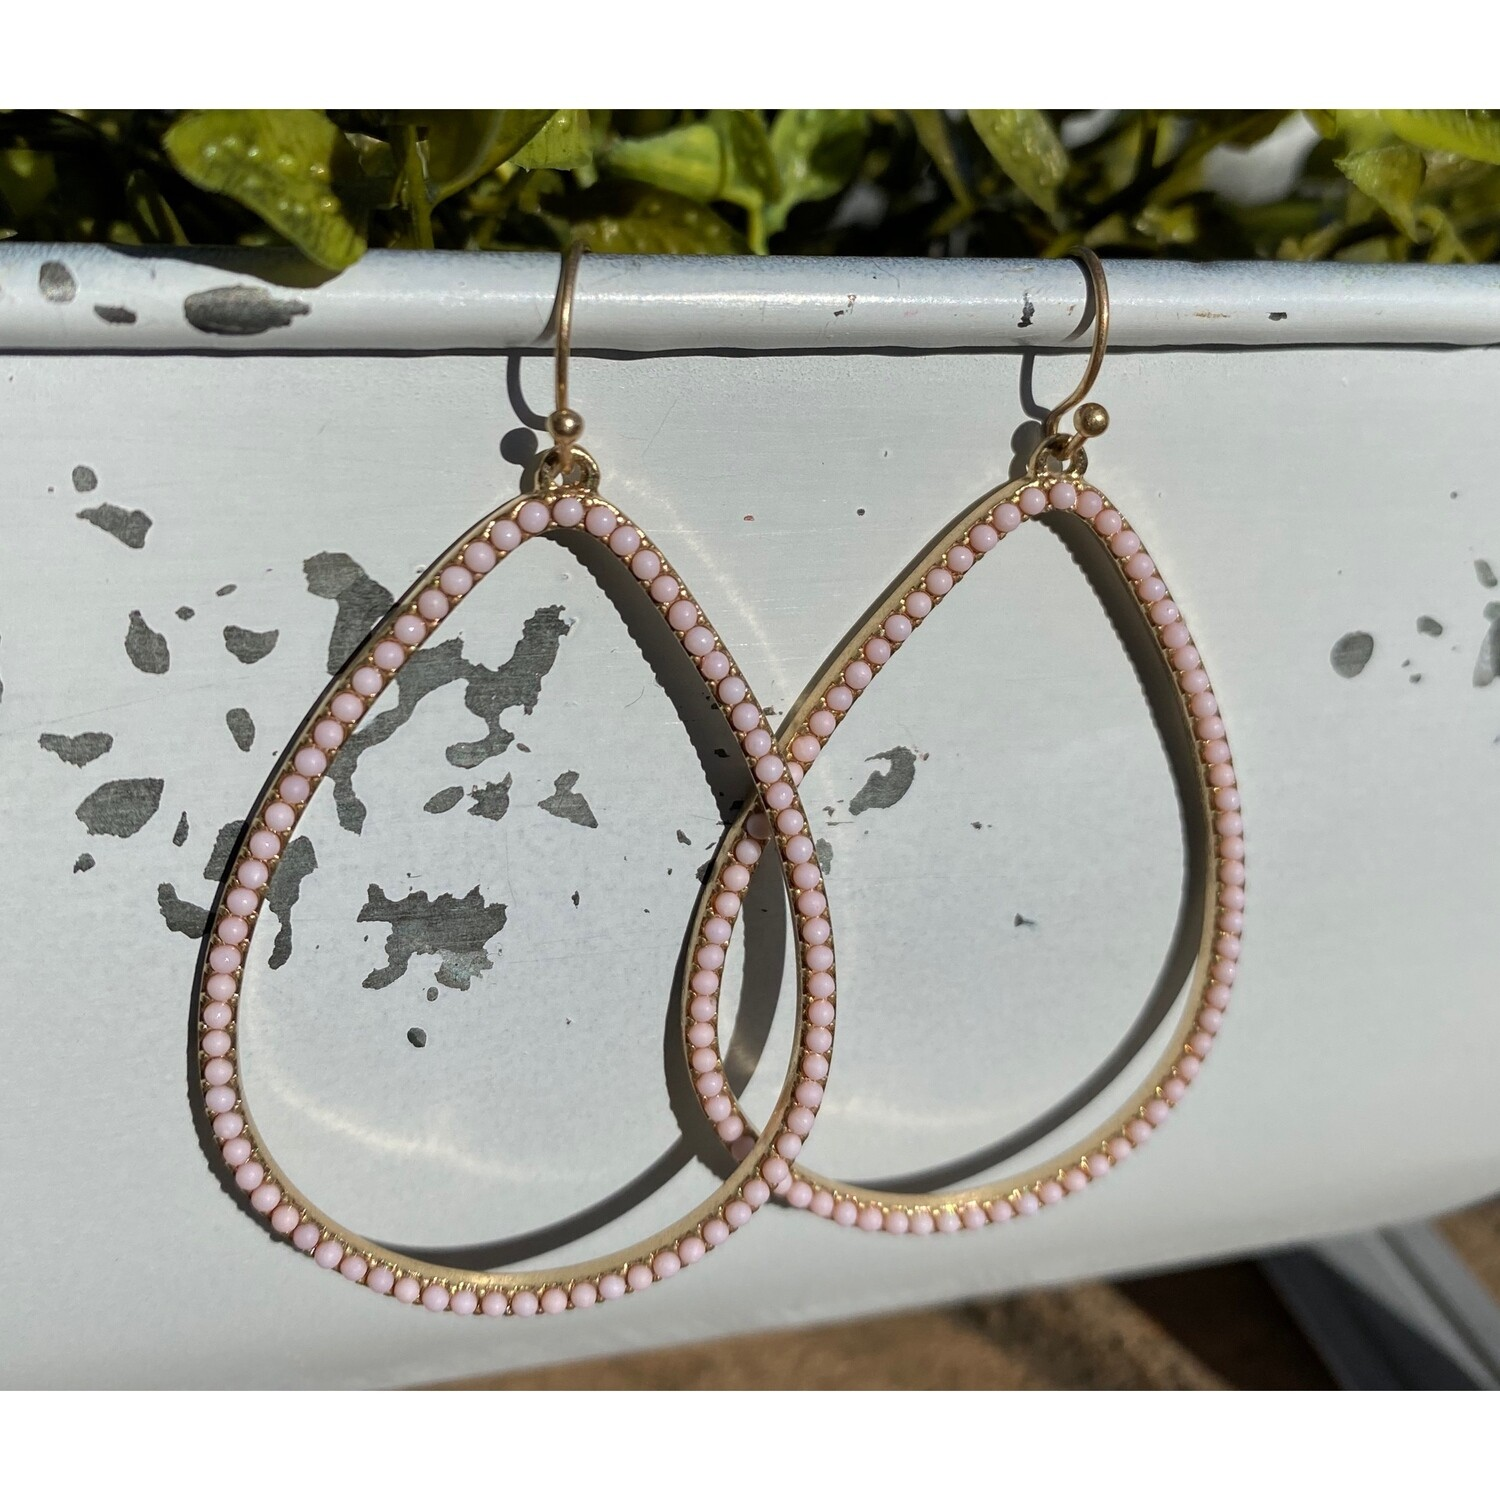 PLANT YOUR SEED EARRINGS